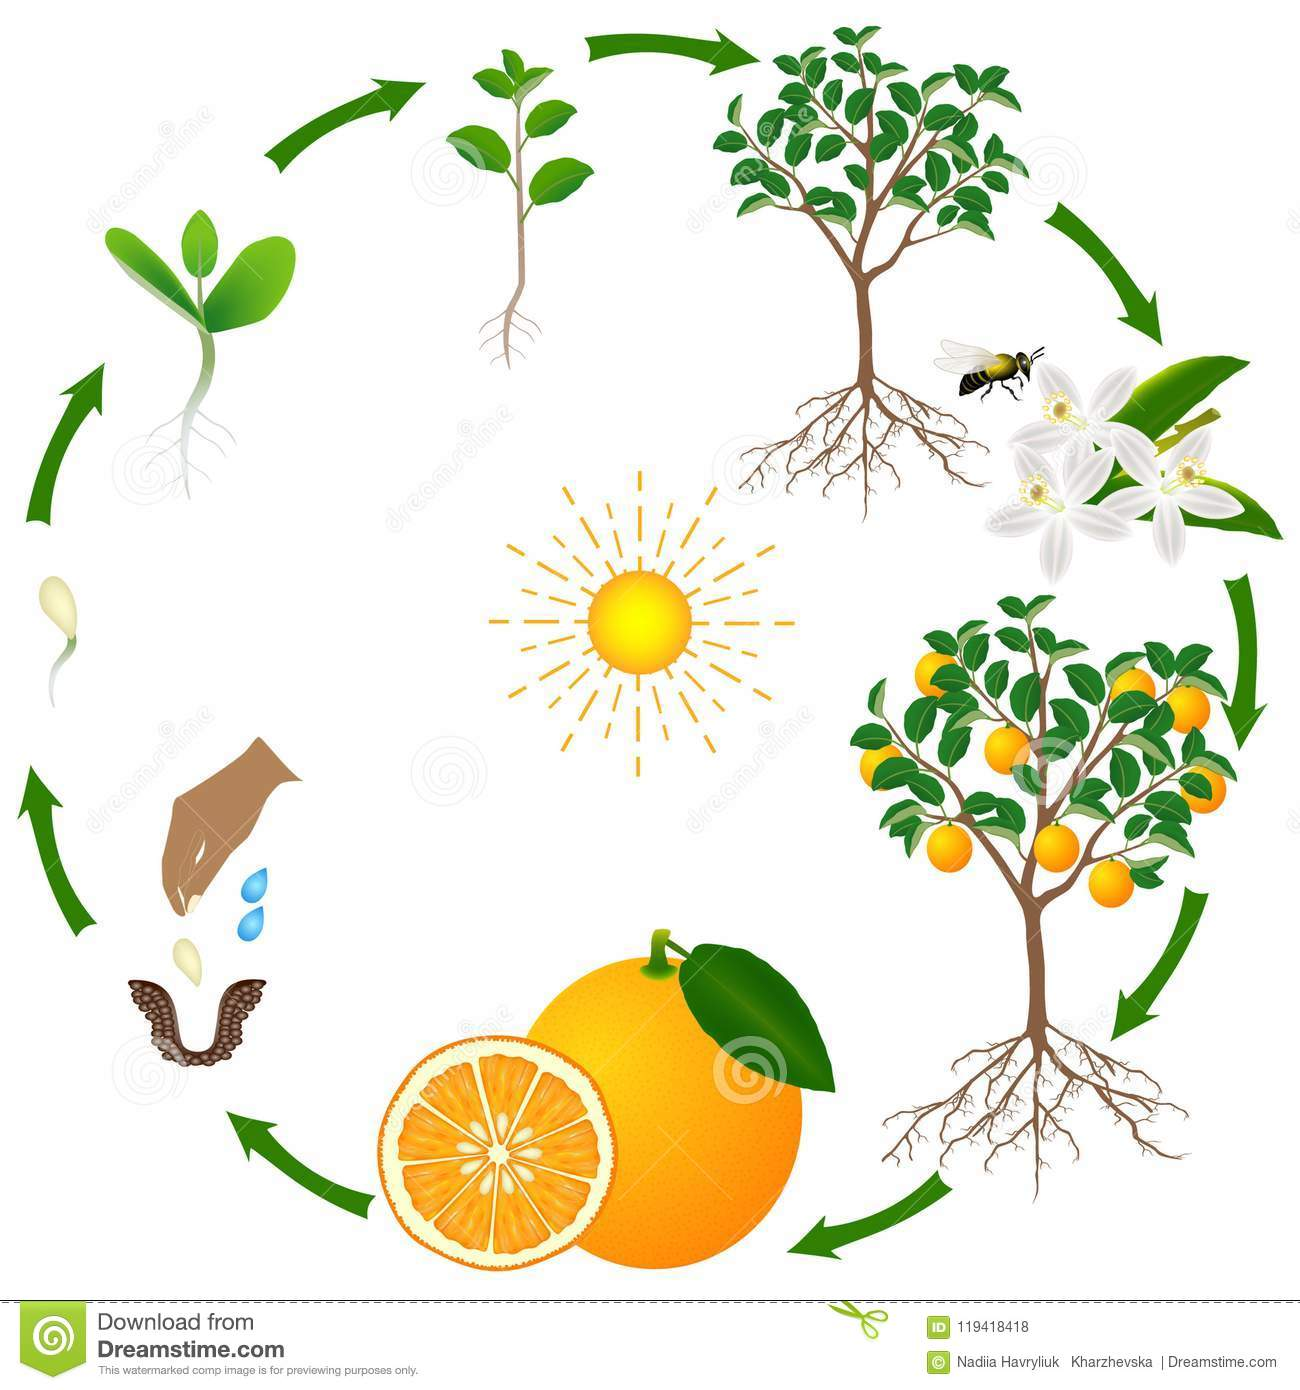 A Life Cycle Of An Orange Tree On A White Background Stock Vector